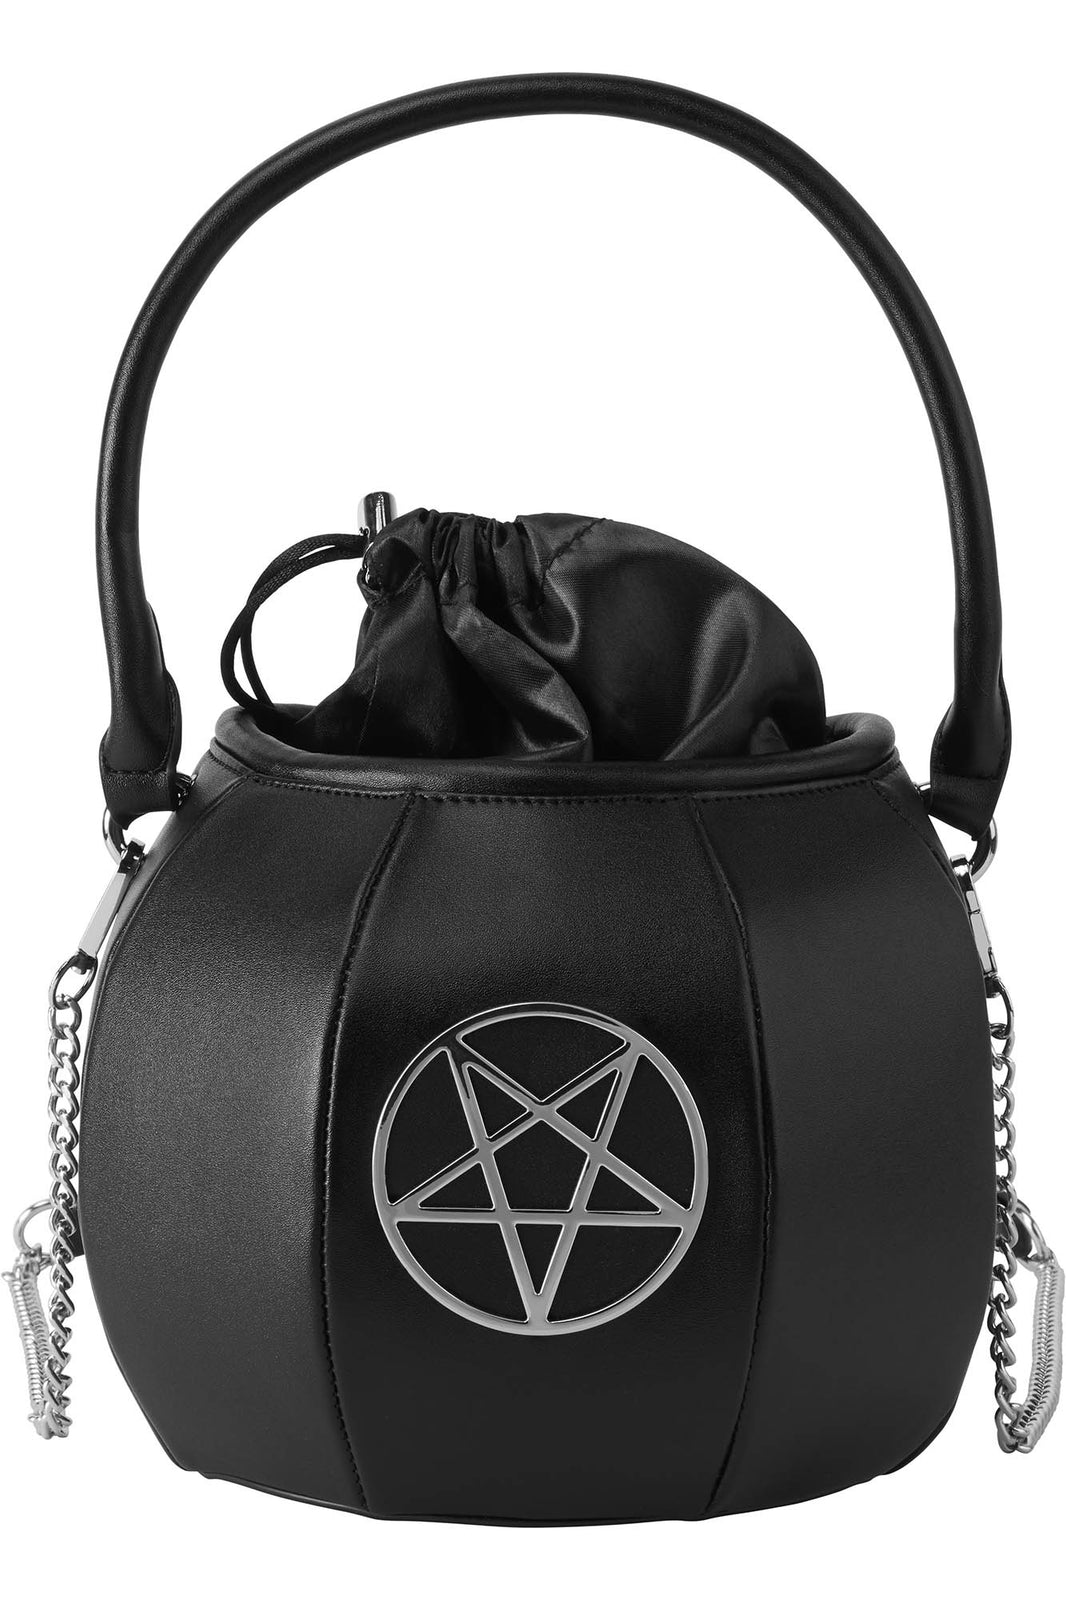 Cauldron Handbag